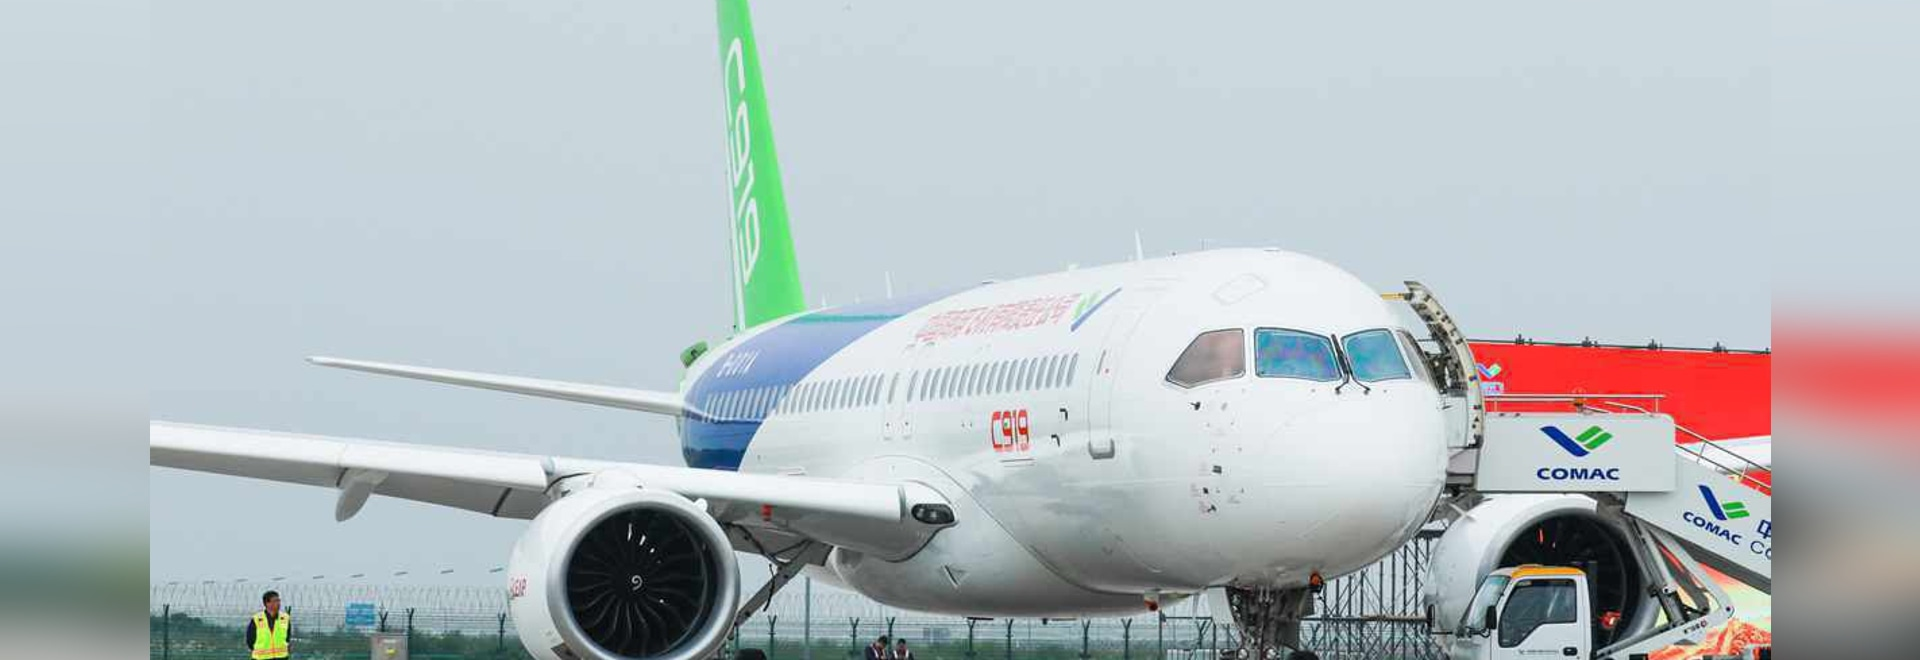 The C919 has not flown as much as expected due to continuing design refinements. (Photo: Comac)